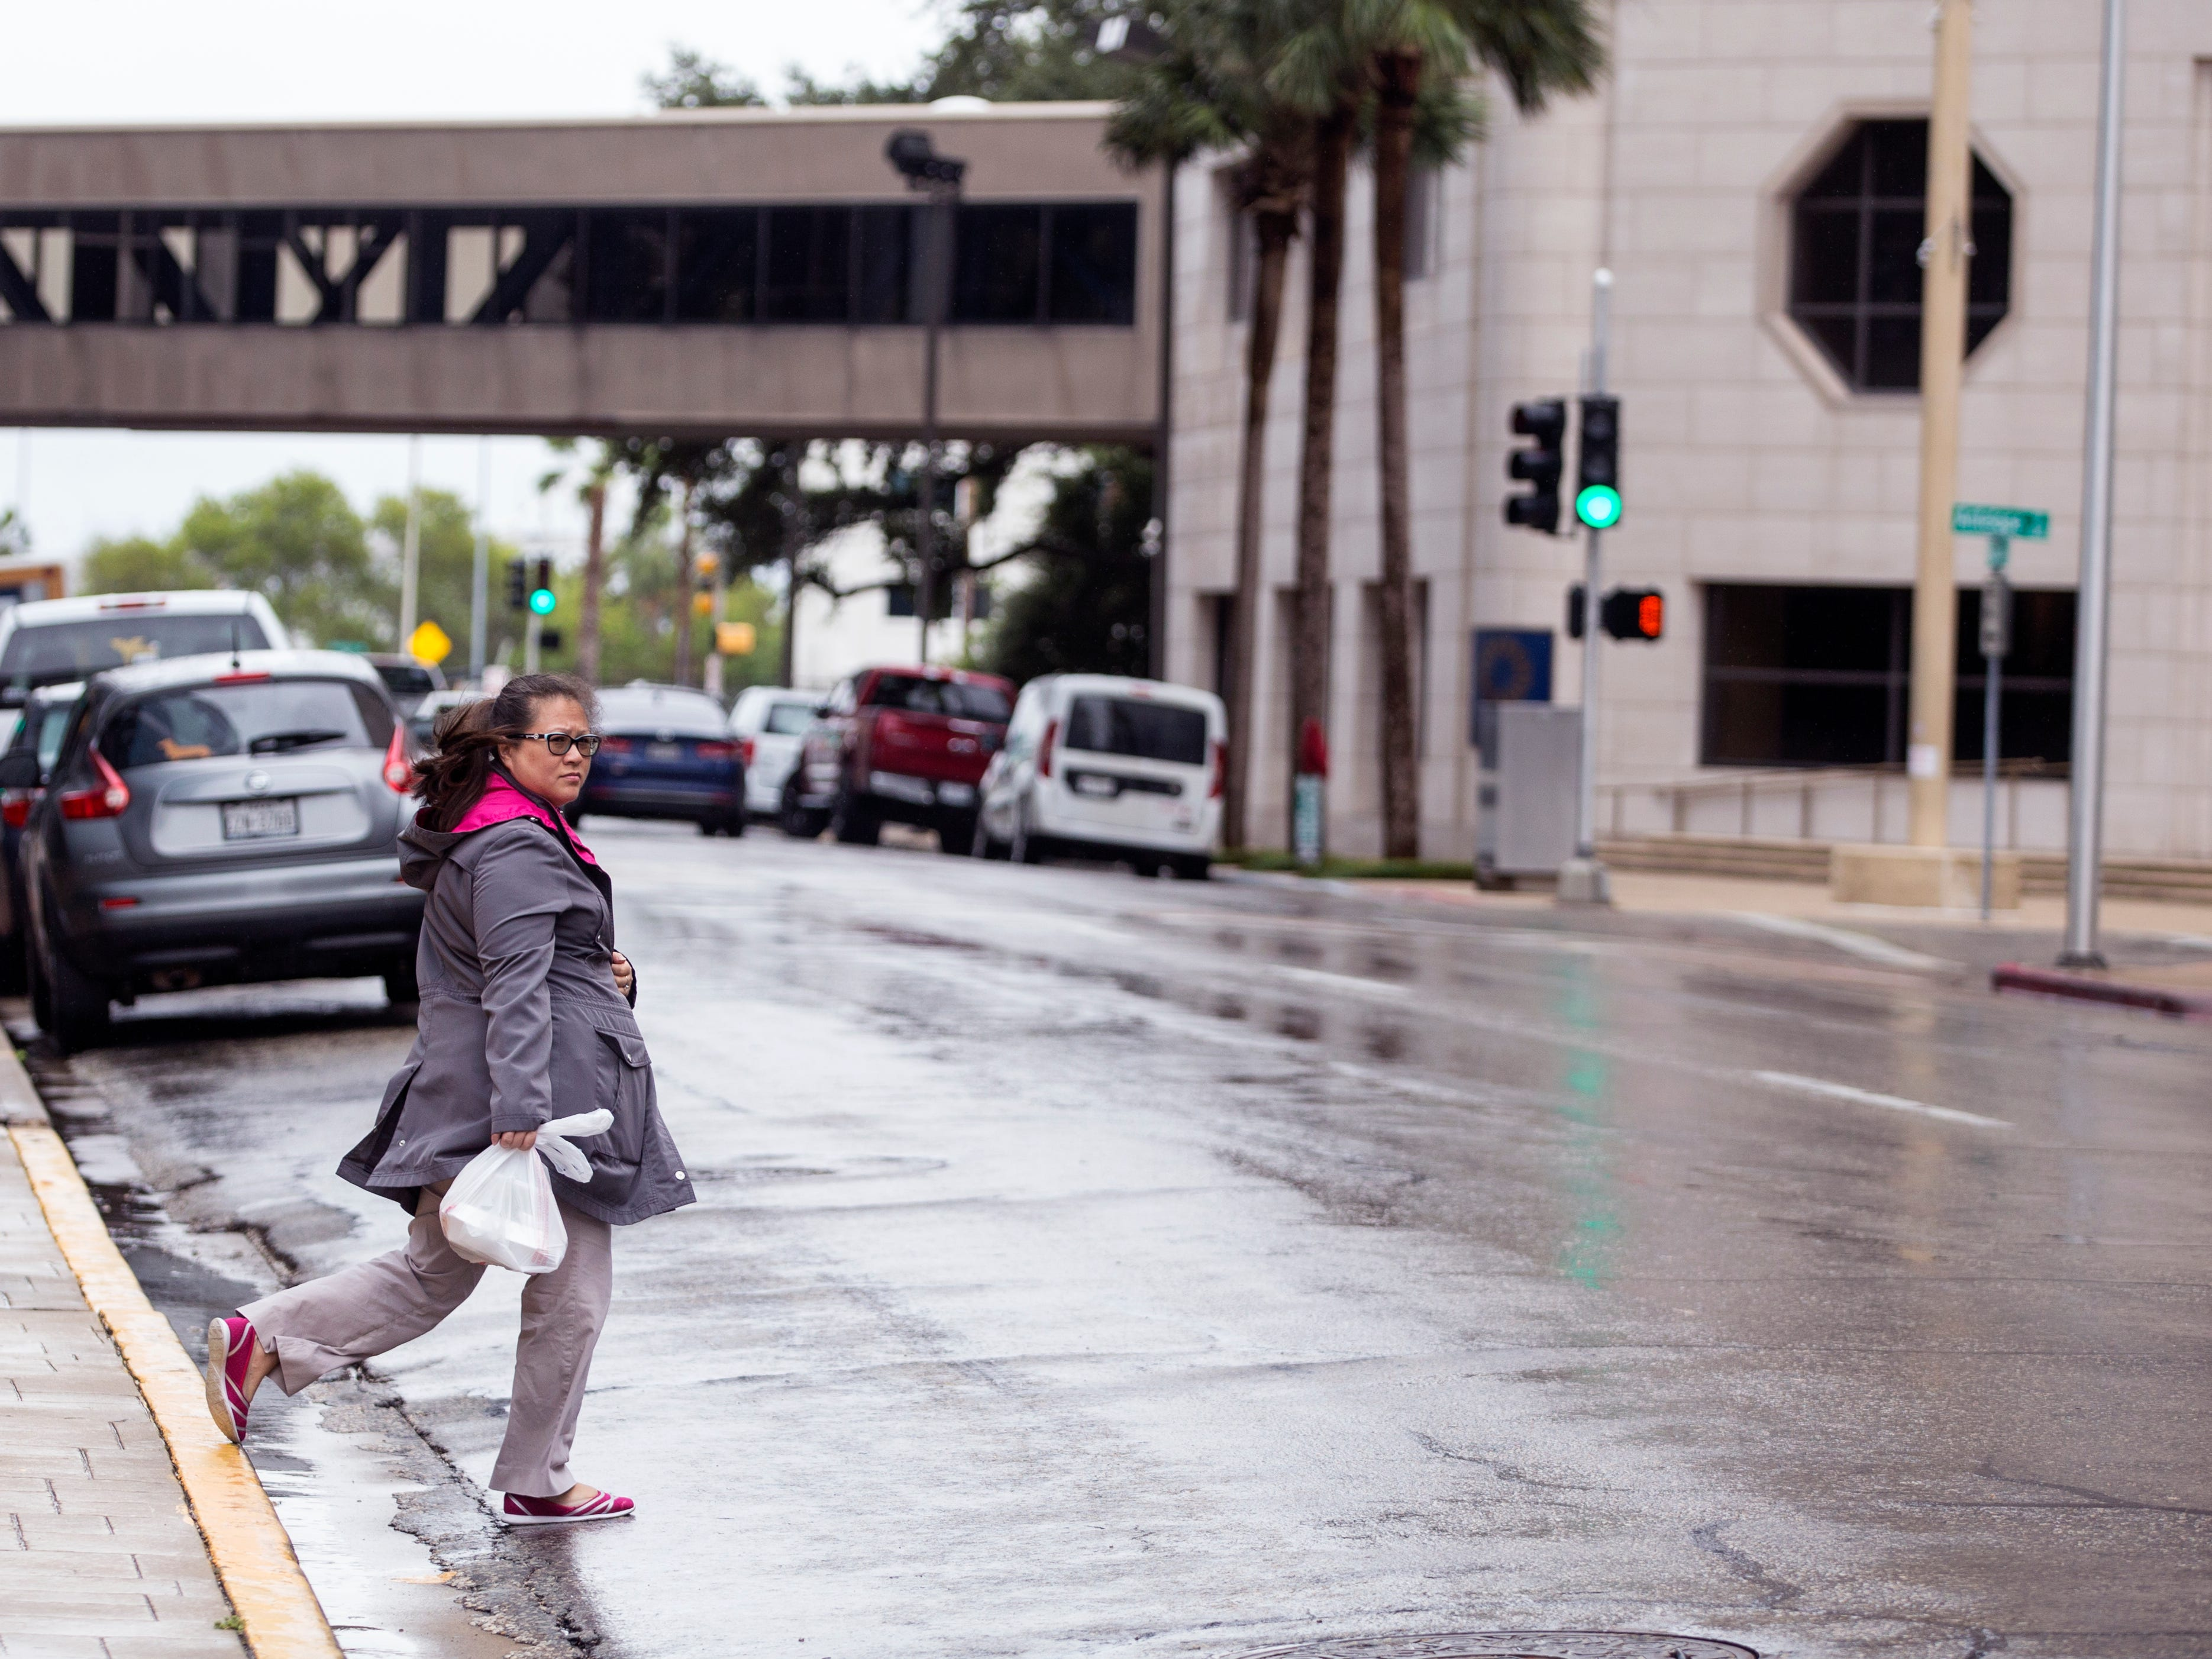 A woman rushes to her destination in uptown as a cold front and rain moved through the area on Monday, October 15, 2018.